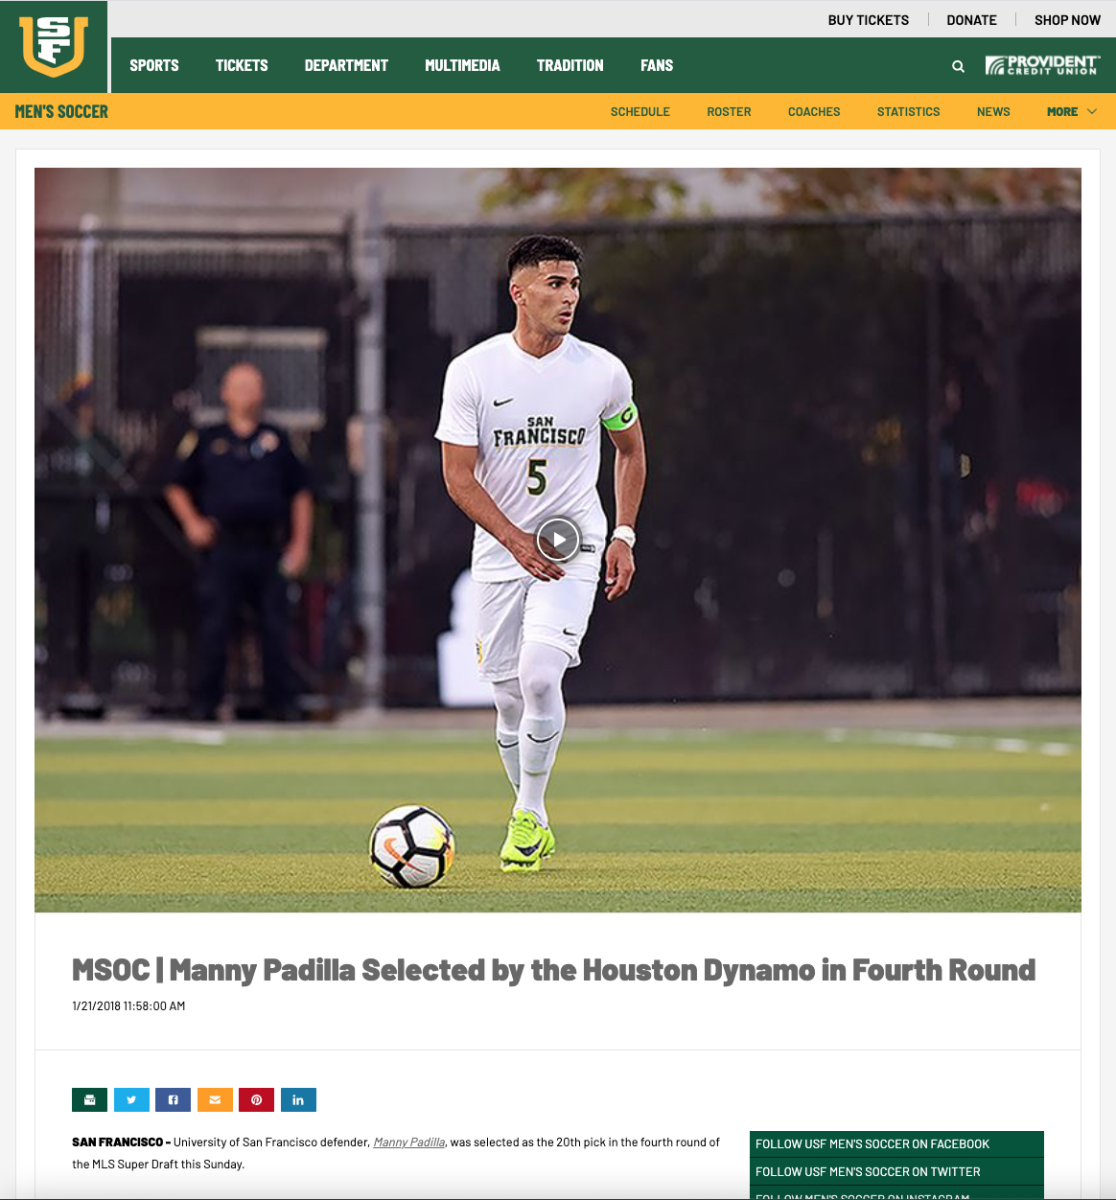 A screenshot of the USF Athletics post on Padilla's selection in the MLS draft.